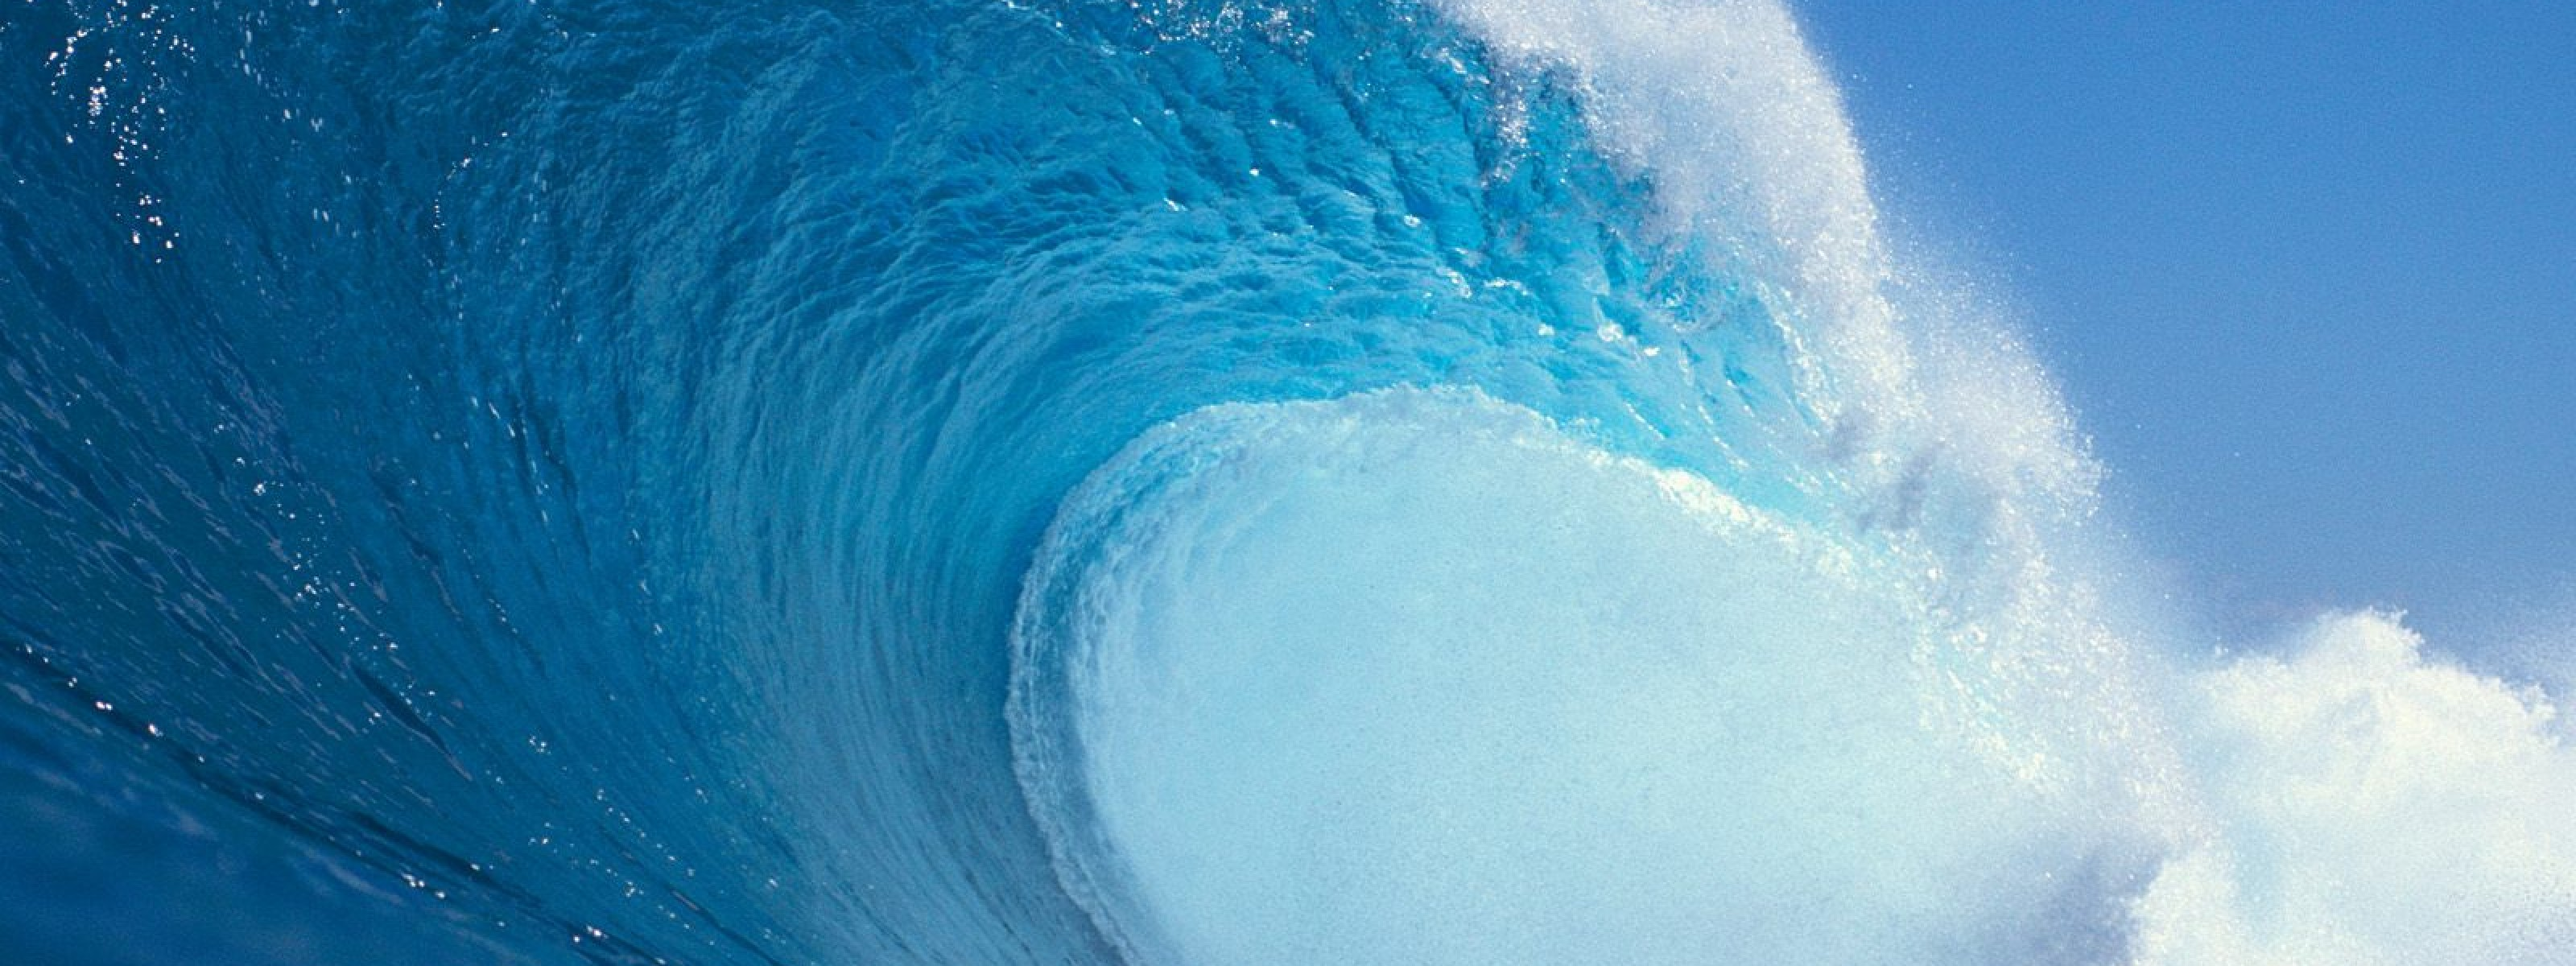 Free Wave Download Free Clip Art Free Clip Art On